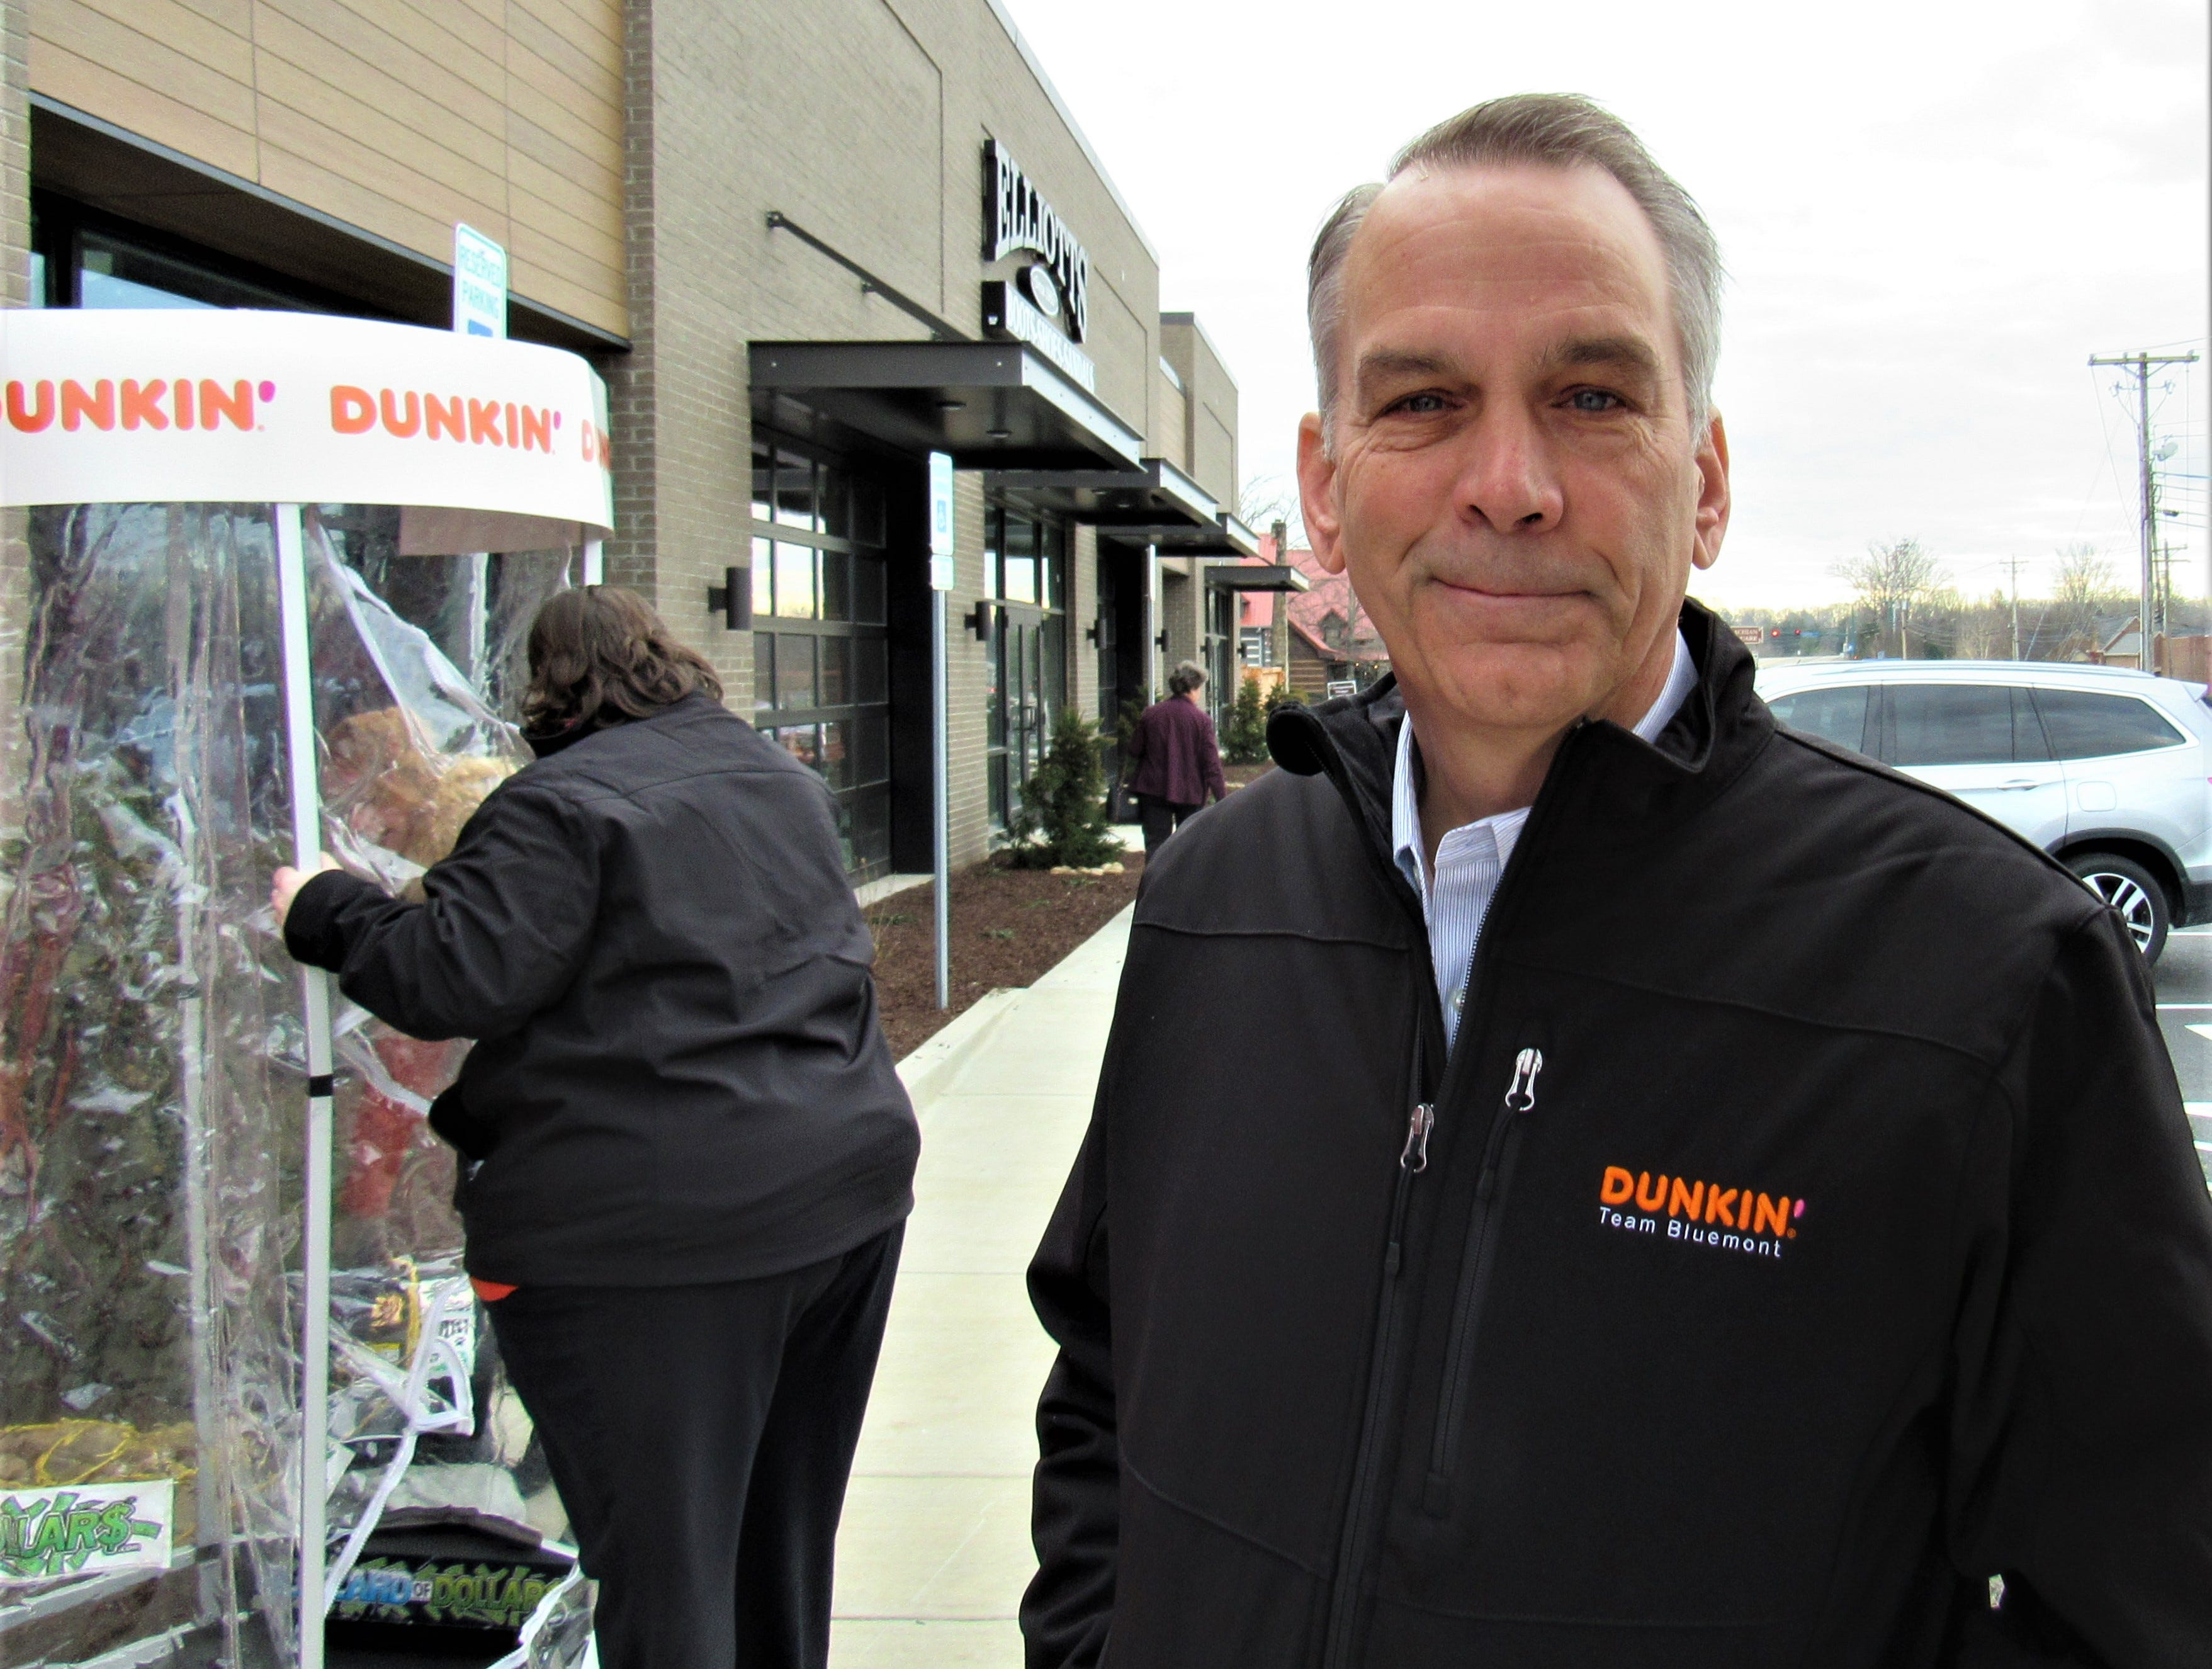 President of the Bluemont Group, Dave Baumgartner is the franchise owner of 14 Knoxville Dunkin' Donuts and scores of regional stores, with more slated to open soon.